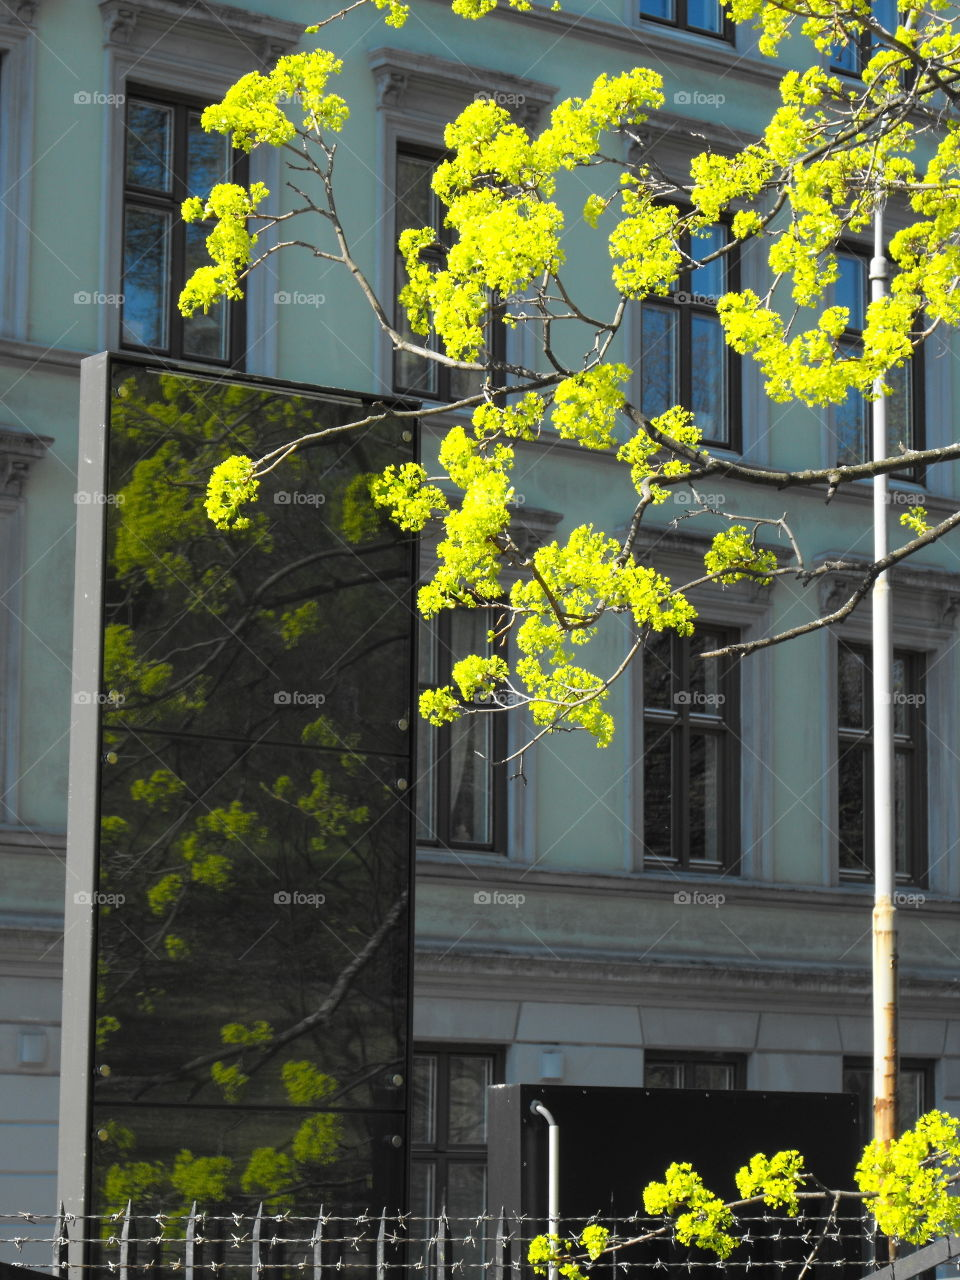 Spring Branches and Reflections in a city